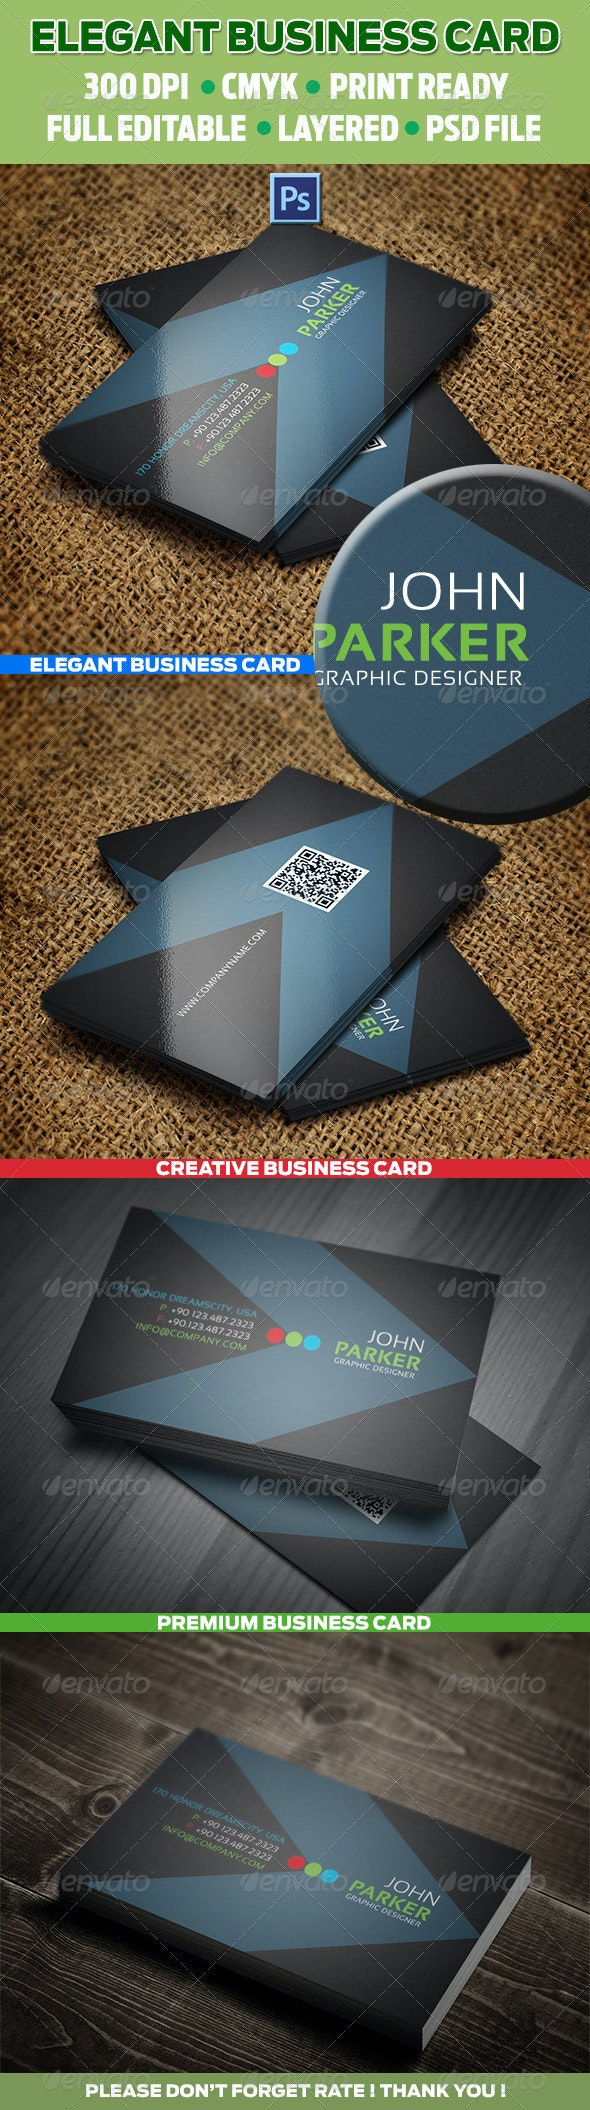 Creative Business Cards 21 - Corporate Business Cards